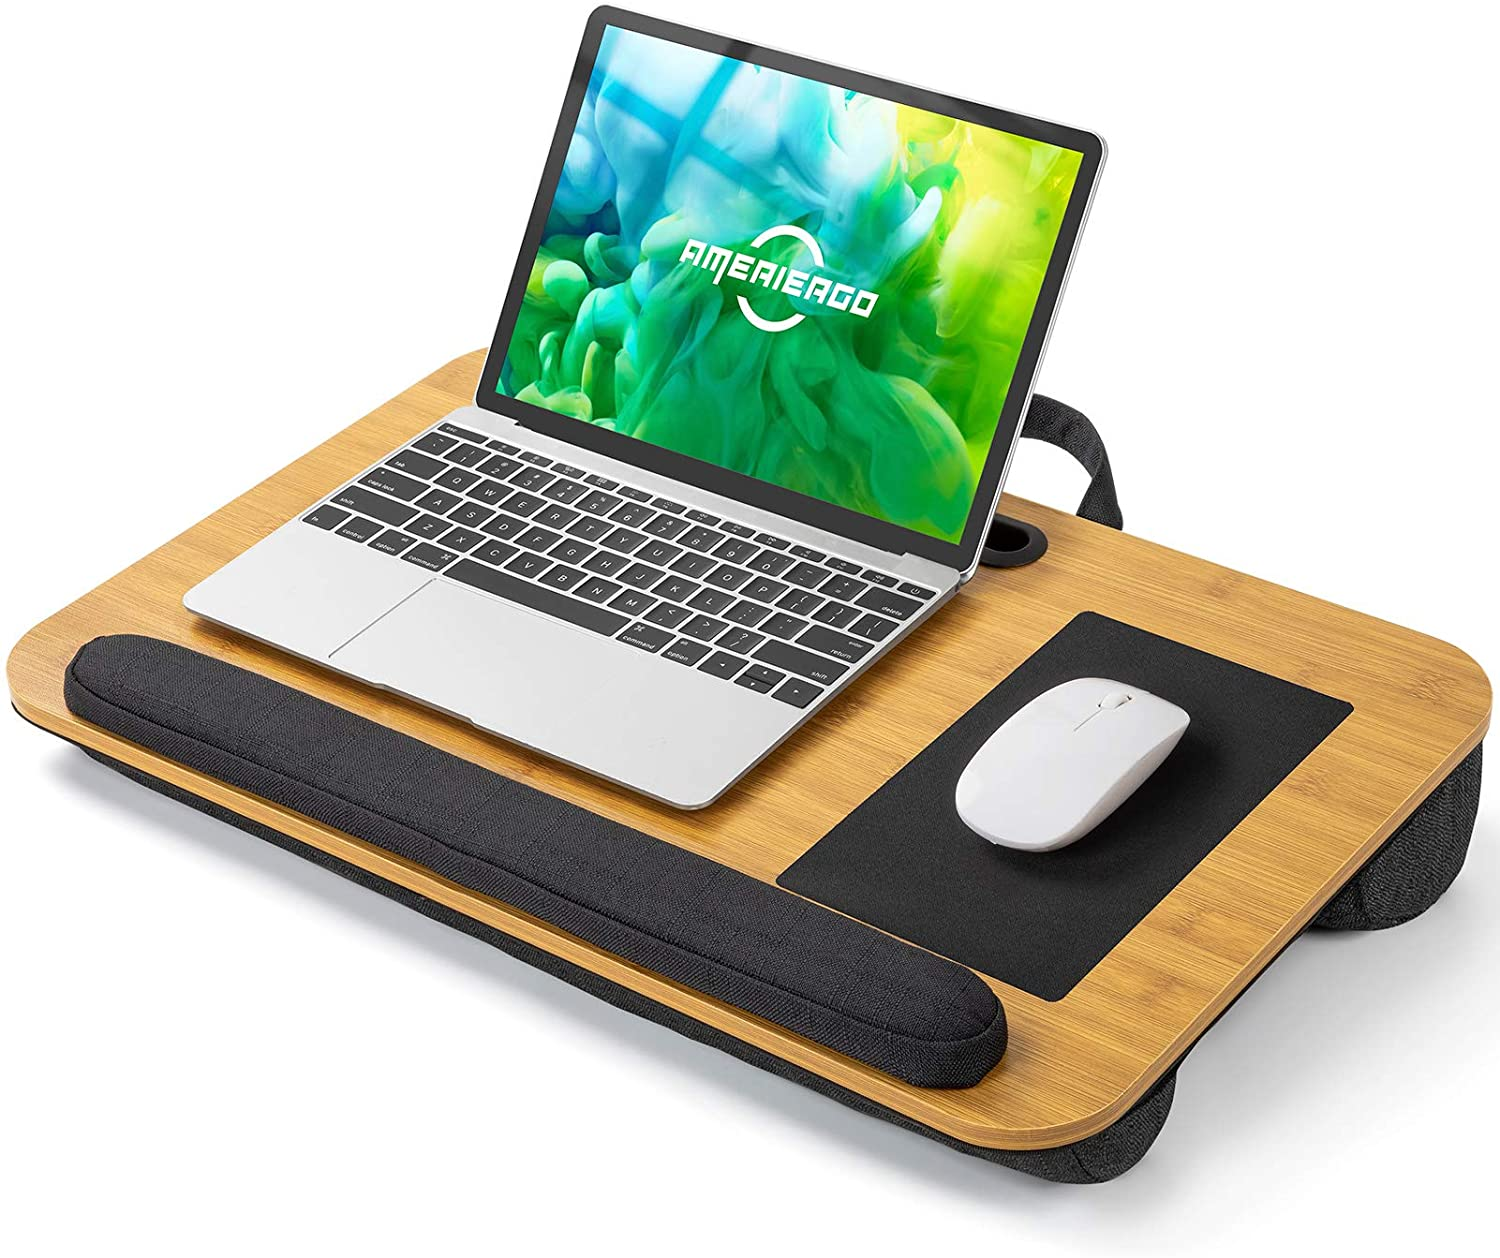 AMERIERGO Lap Desk - Laptop Lap Desk with Dual Cushion, Wrist Rest & Built-in Mouse Pad, Portable Laptop Stand for Sofa & Bed, Multifunctional Slot for Tablet, Pen & Phone (Natural Wood)